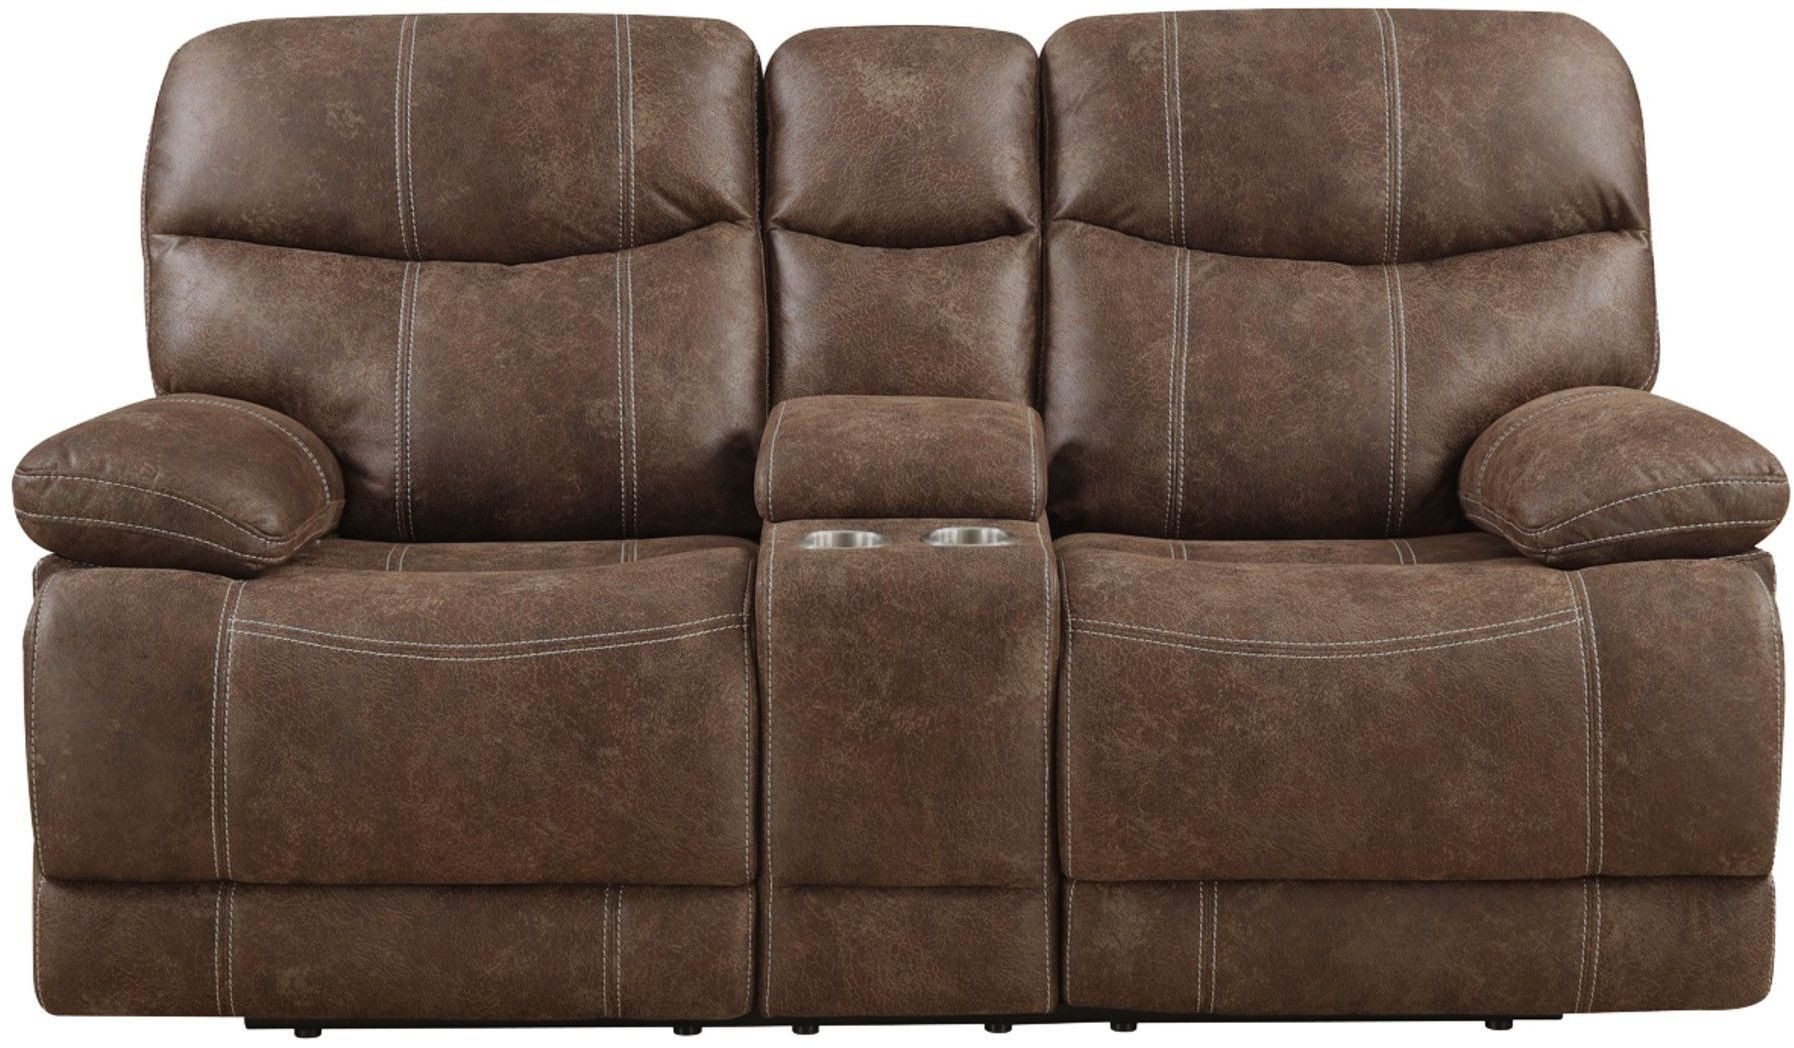 Earl Sanded Microfiber Brown Reclining Console Loveseat From Emerald Home Coleman Furniture